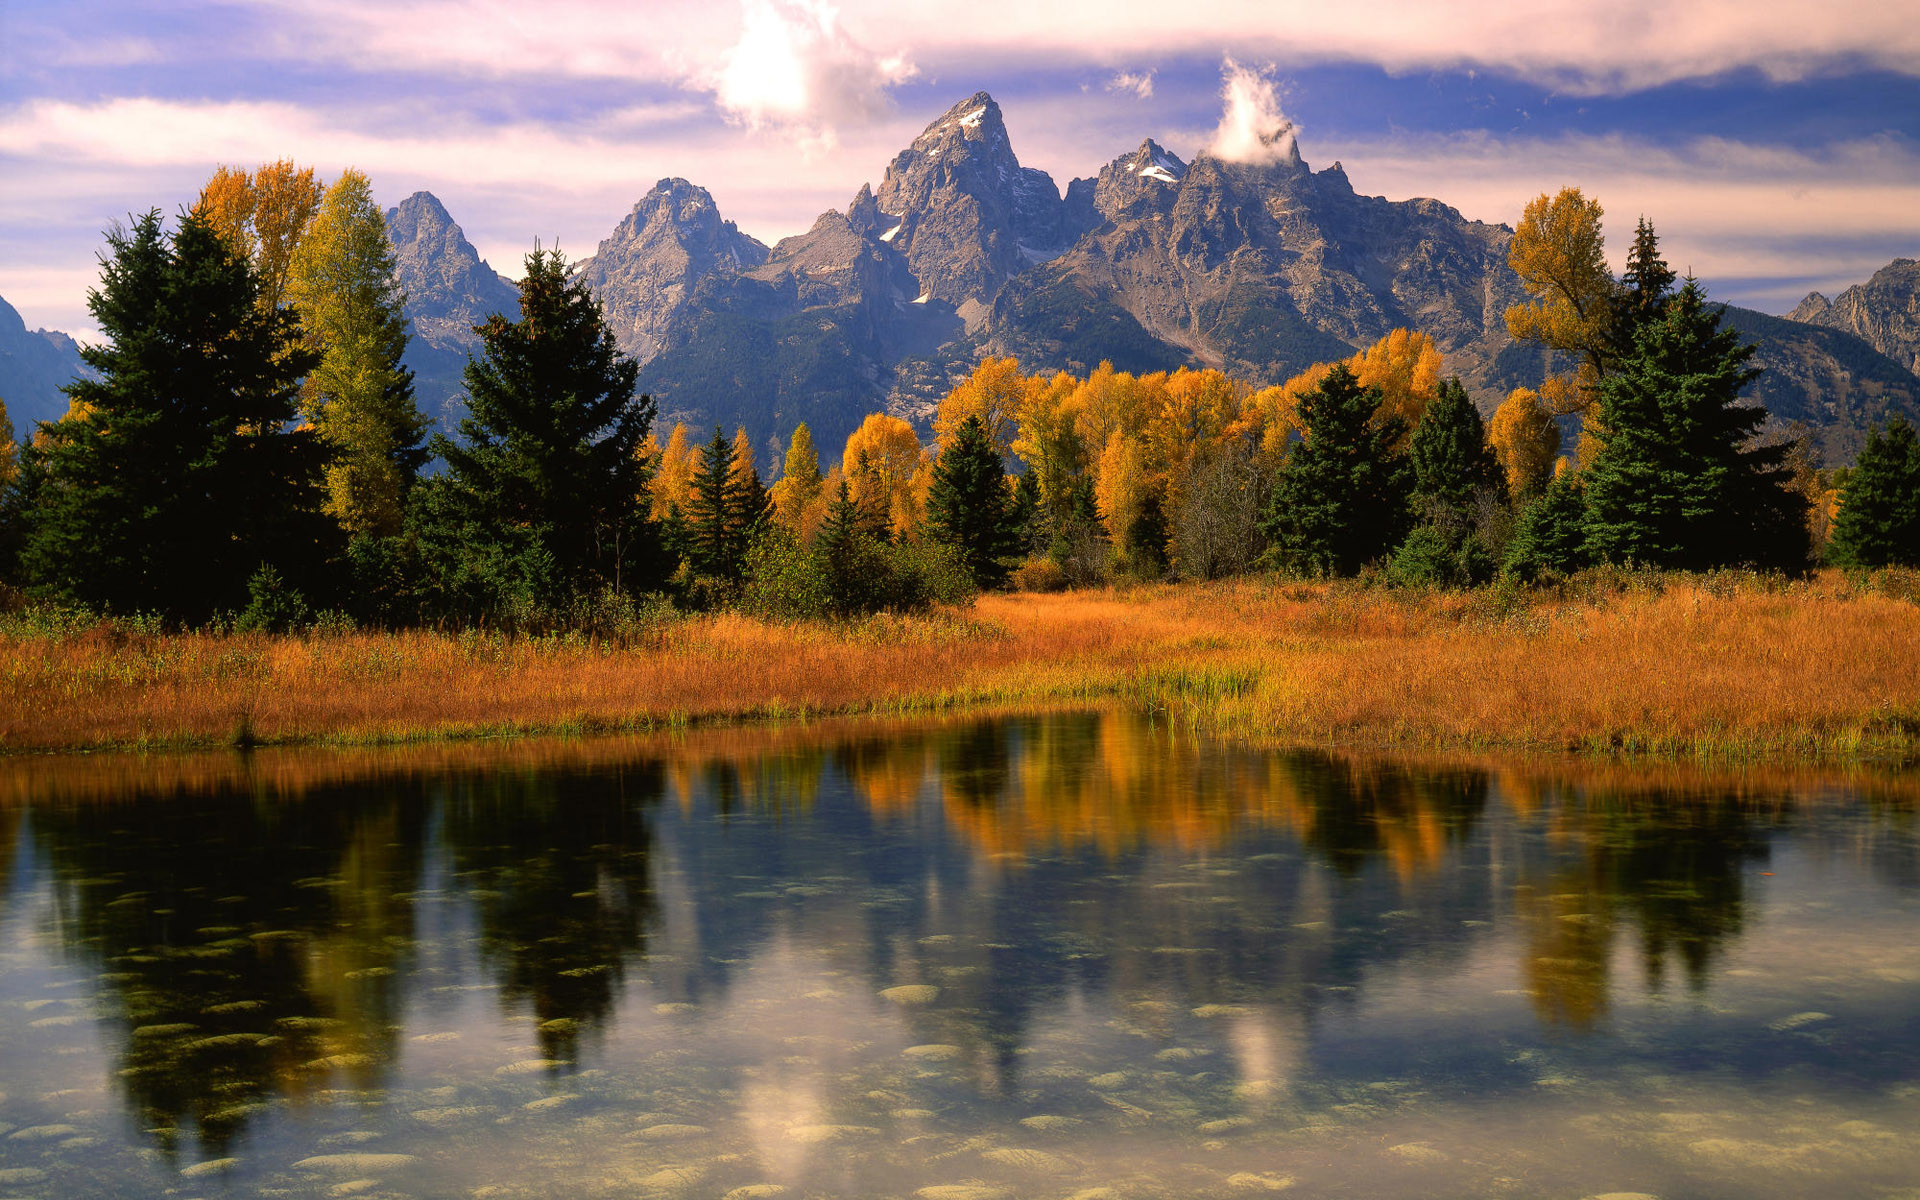 fall mountain desktop backgrounds| hd wallpaper, background images